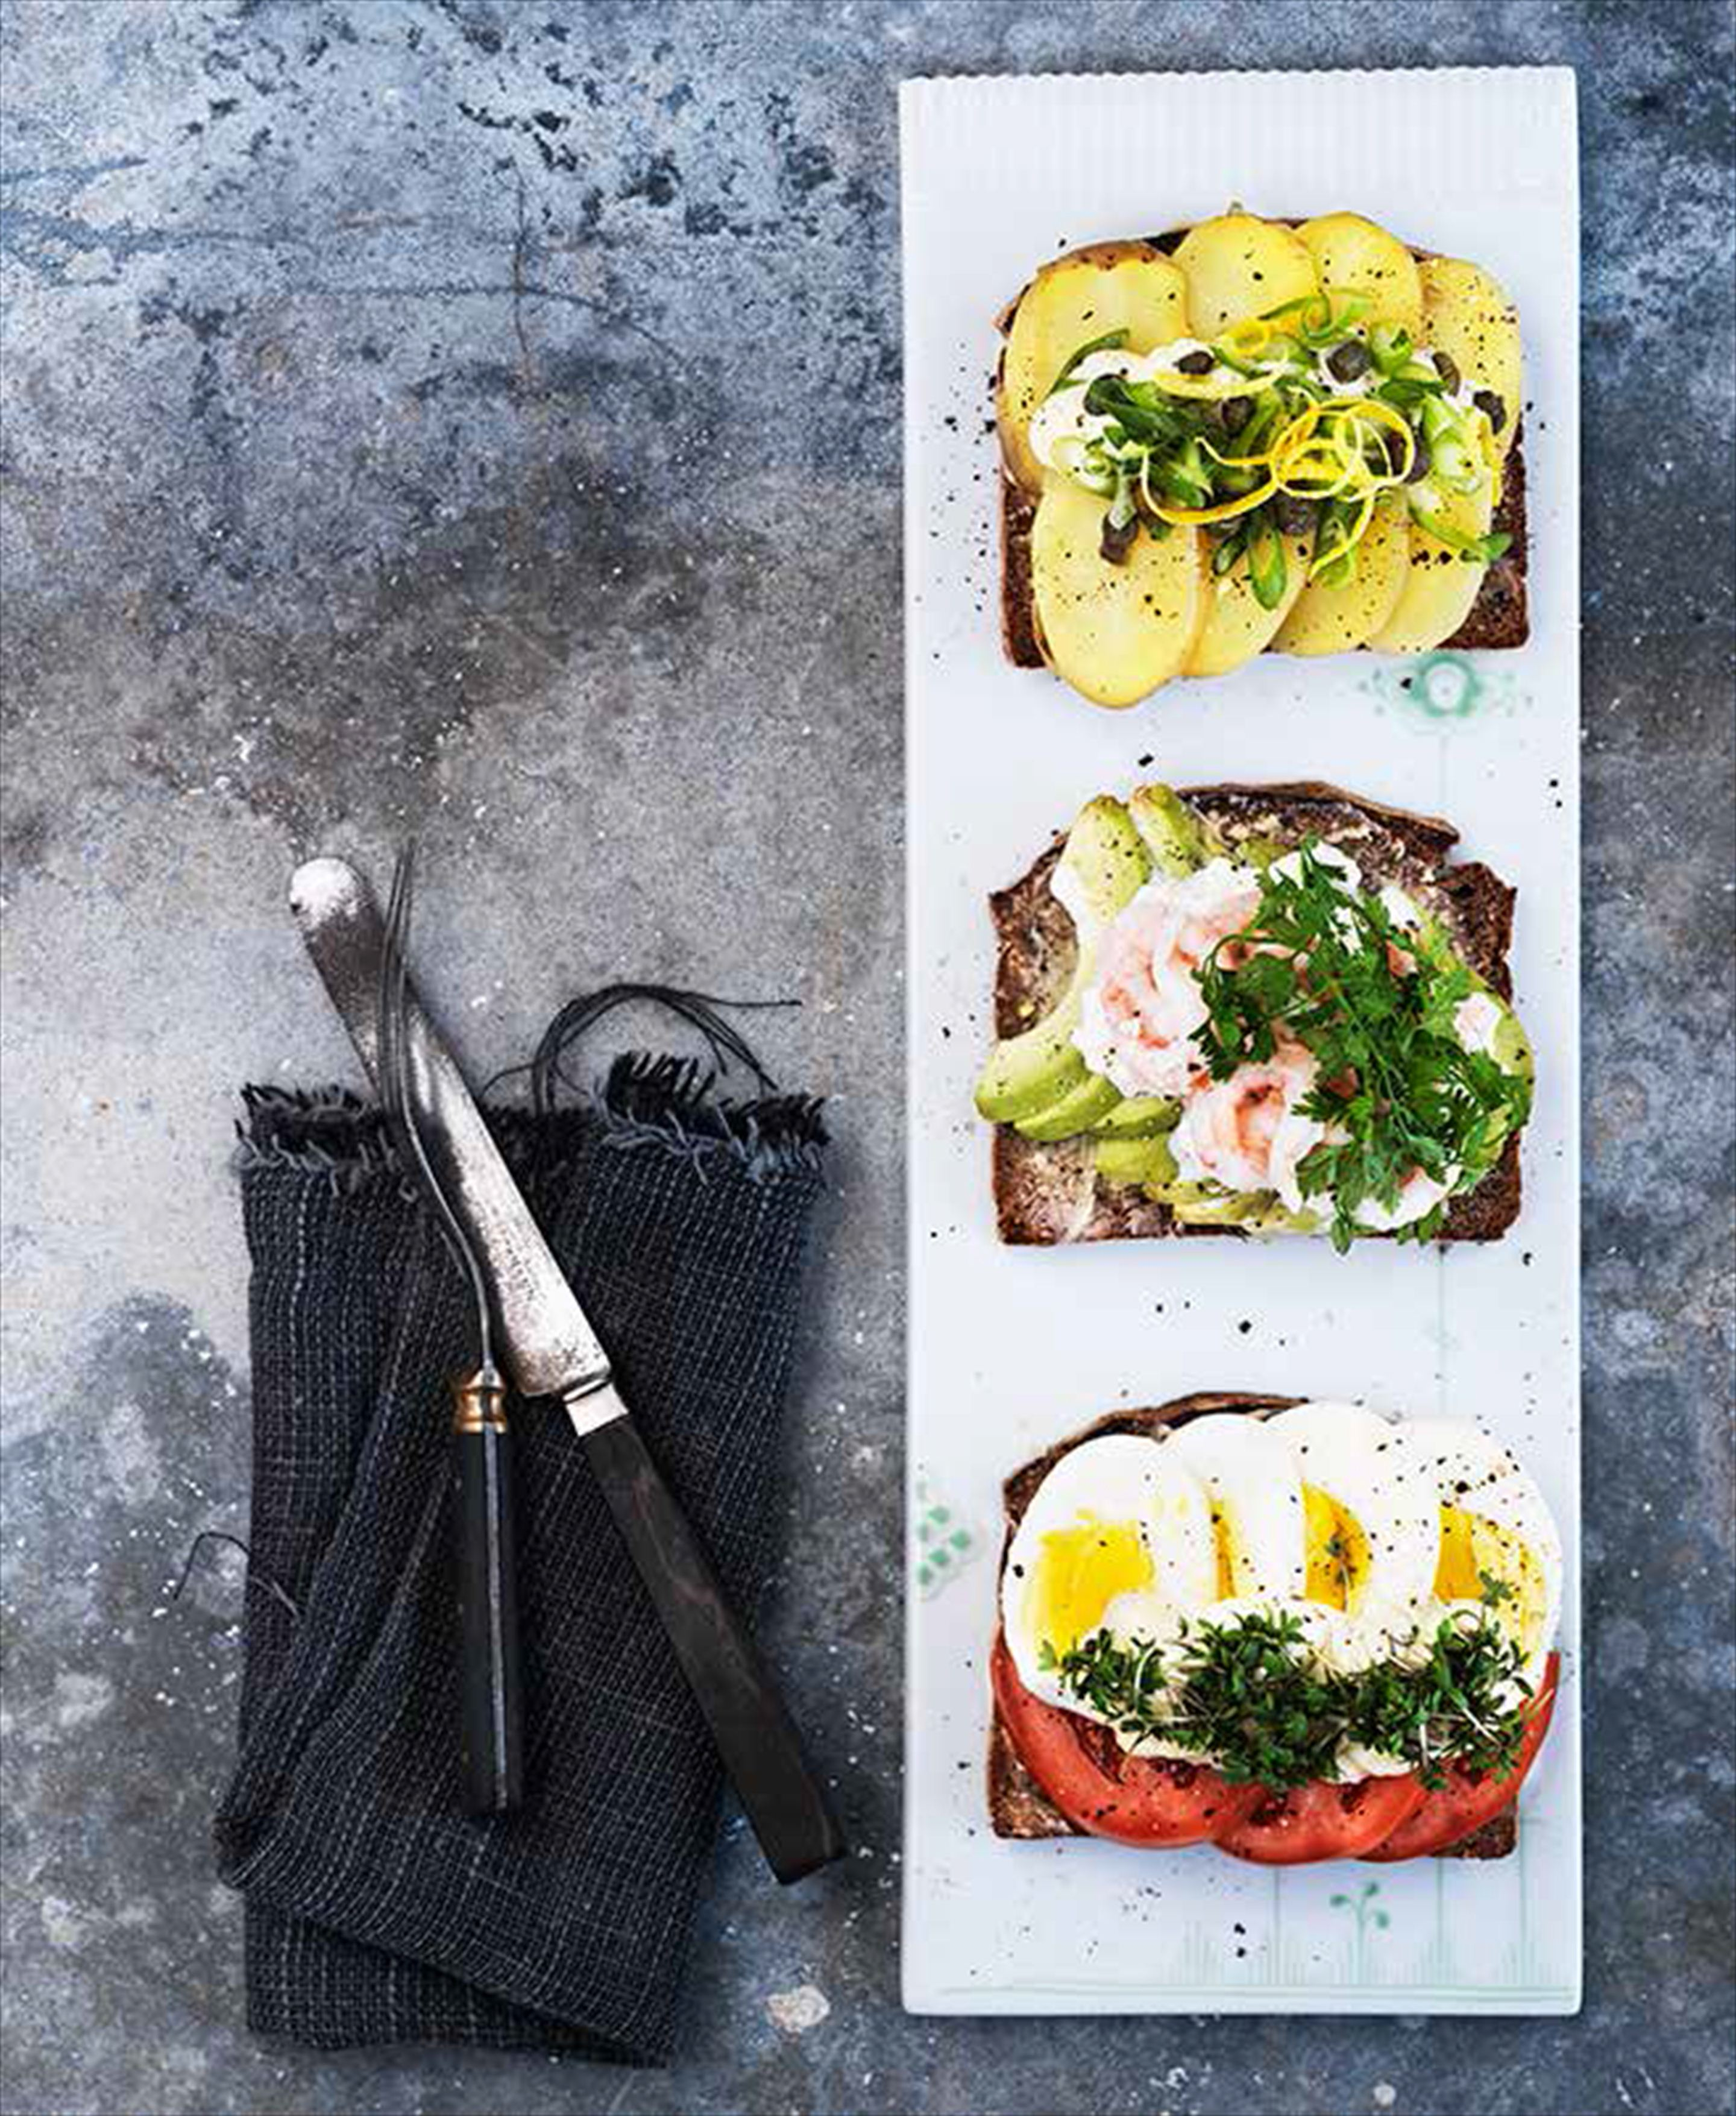 Three kinds of open sandwich